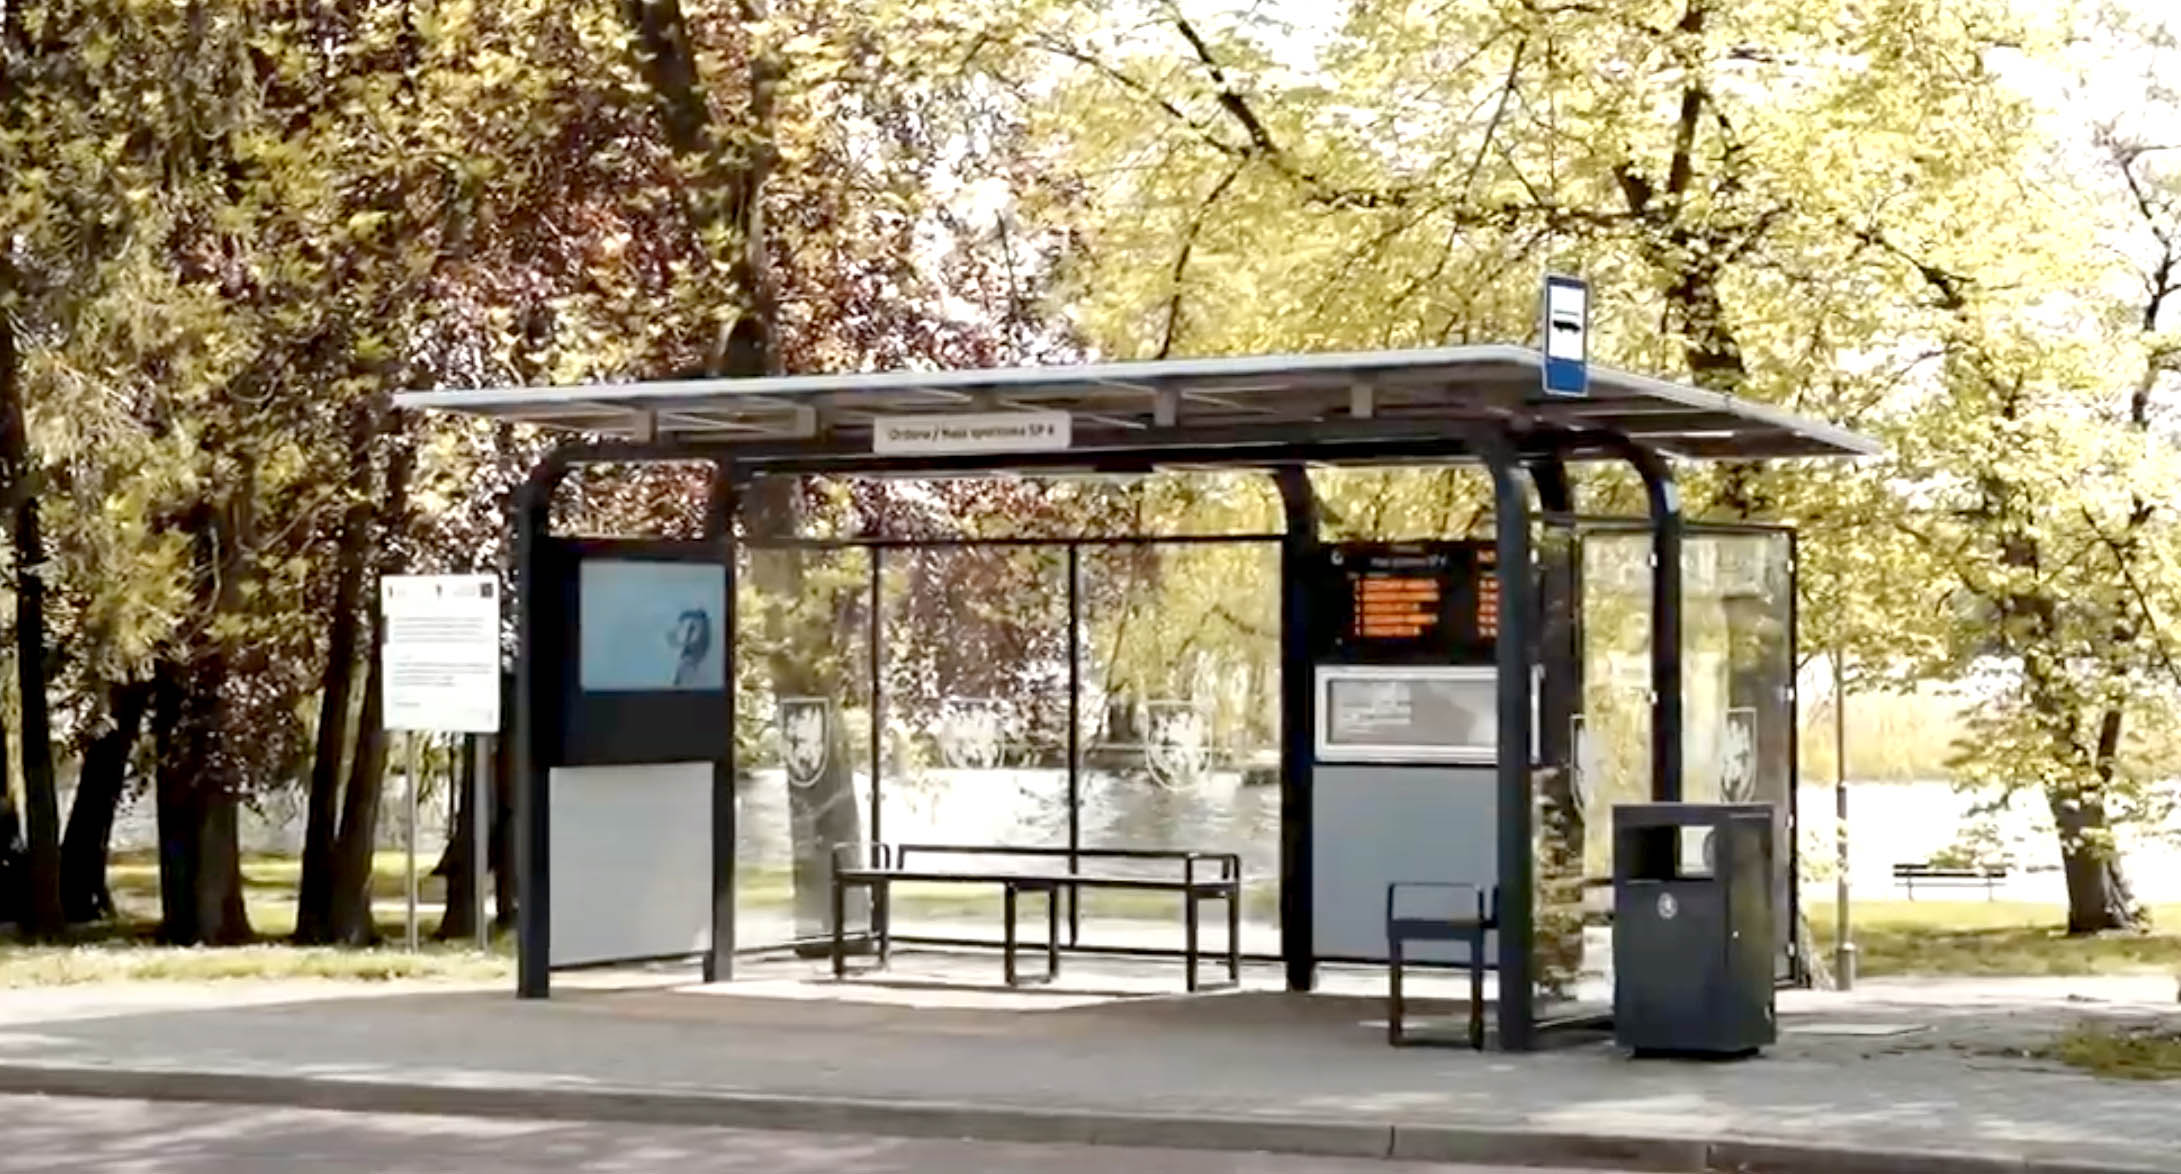 Dysten Passenger Information Displays integrated with bus shelters